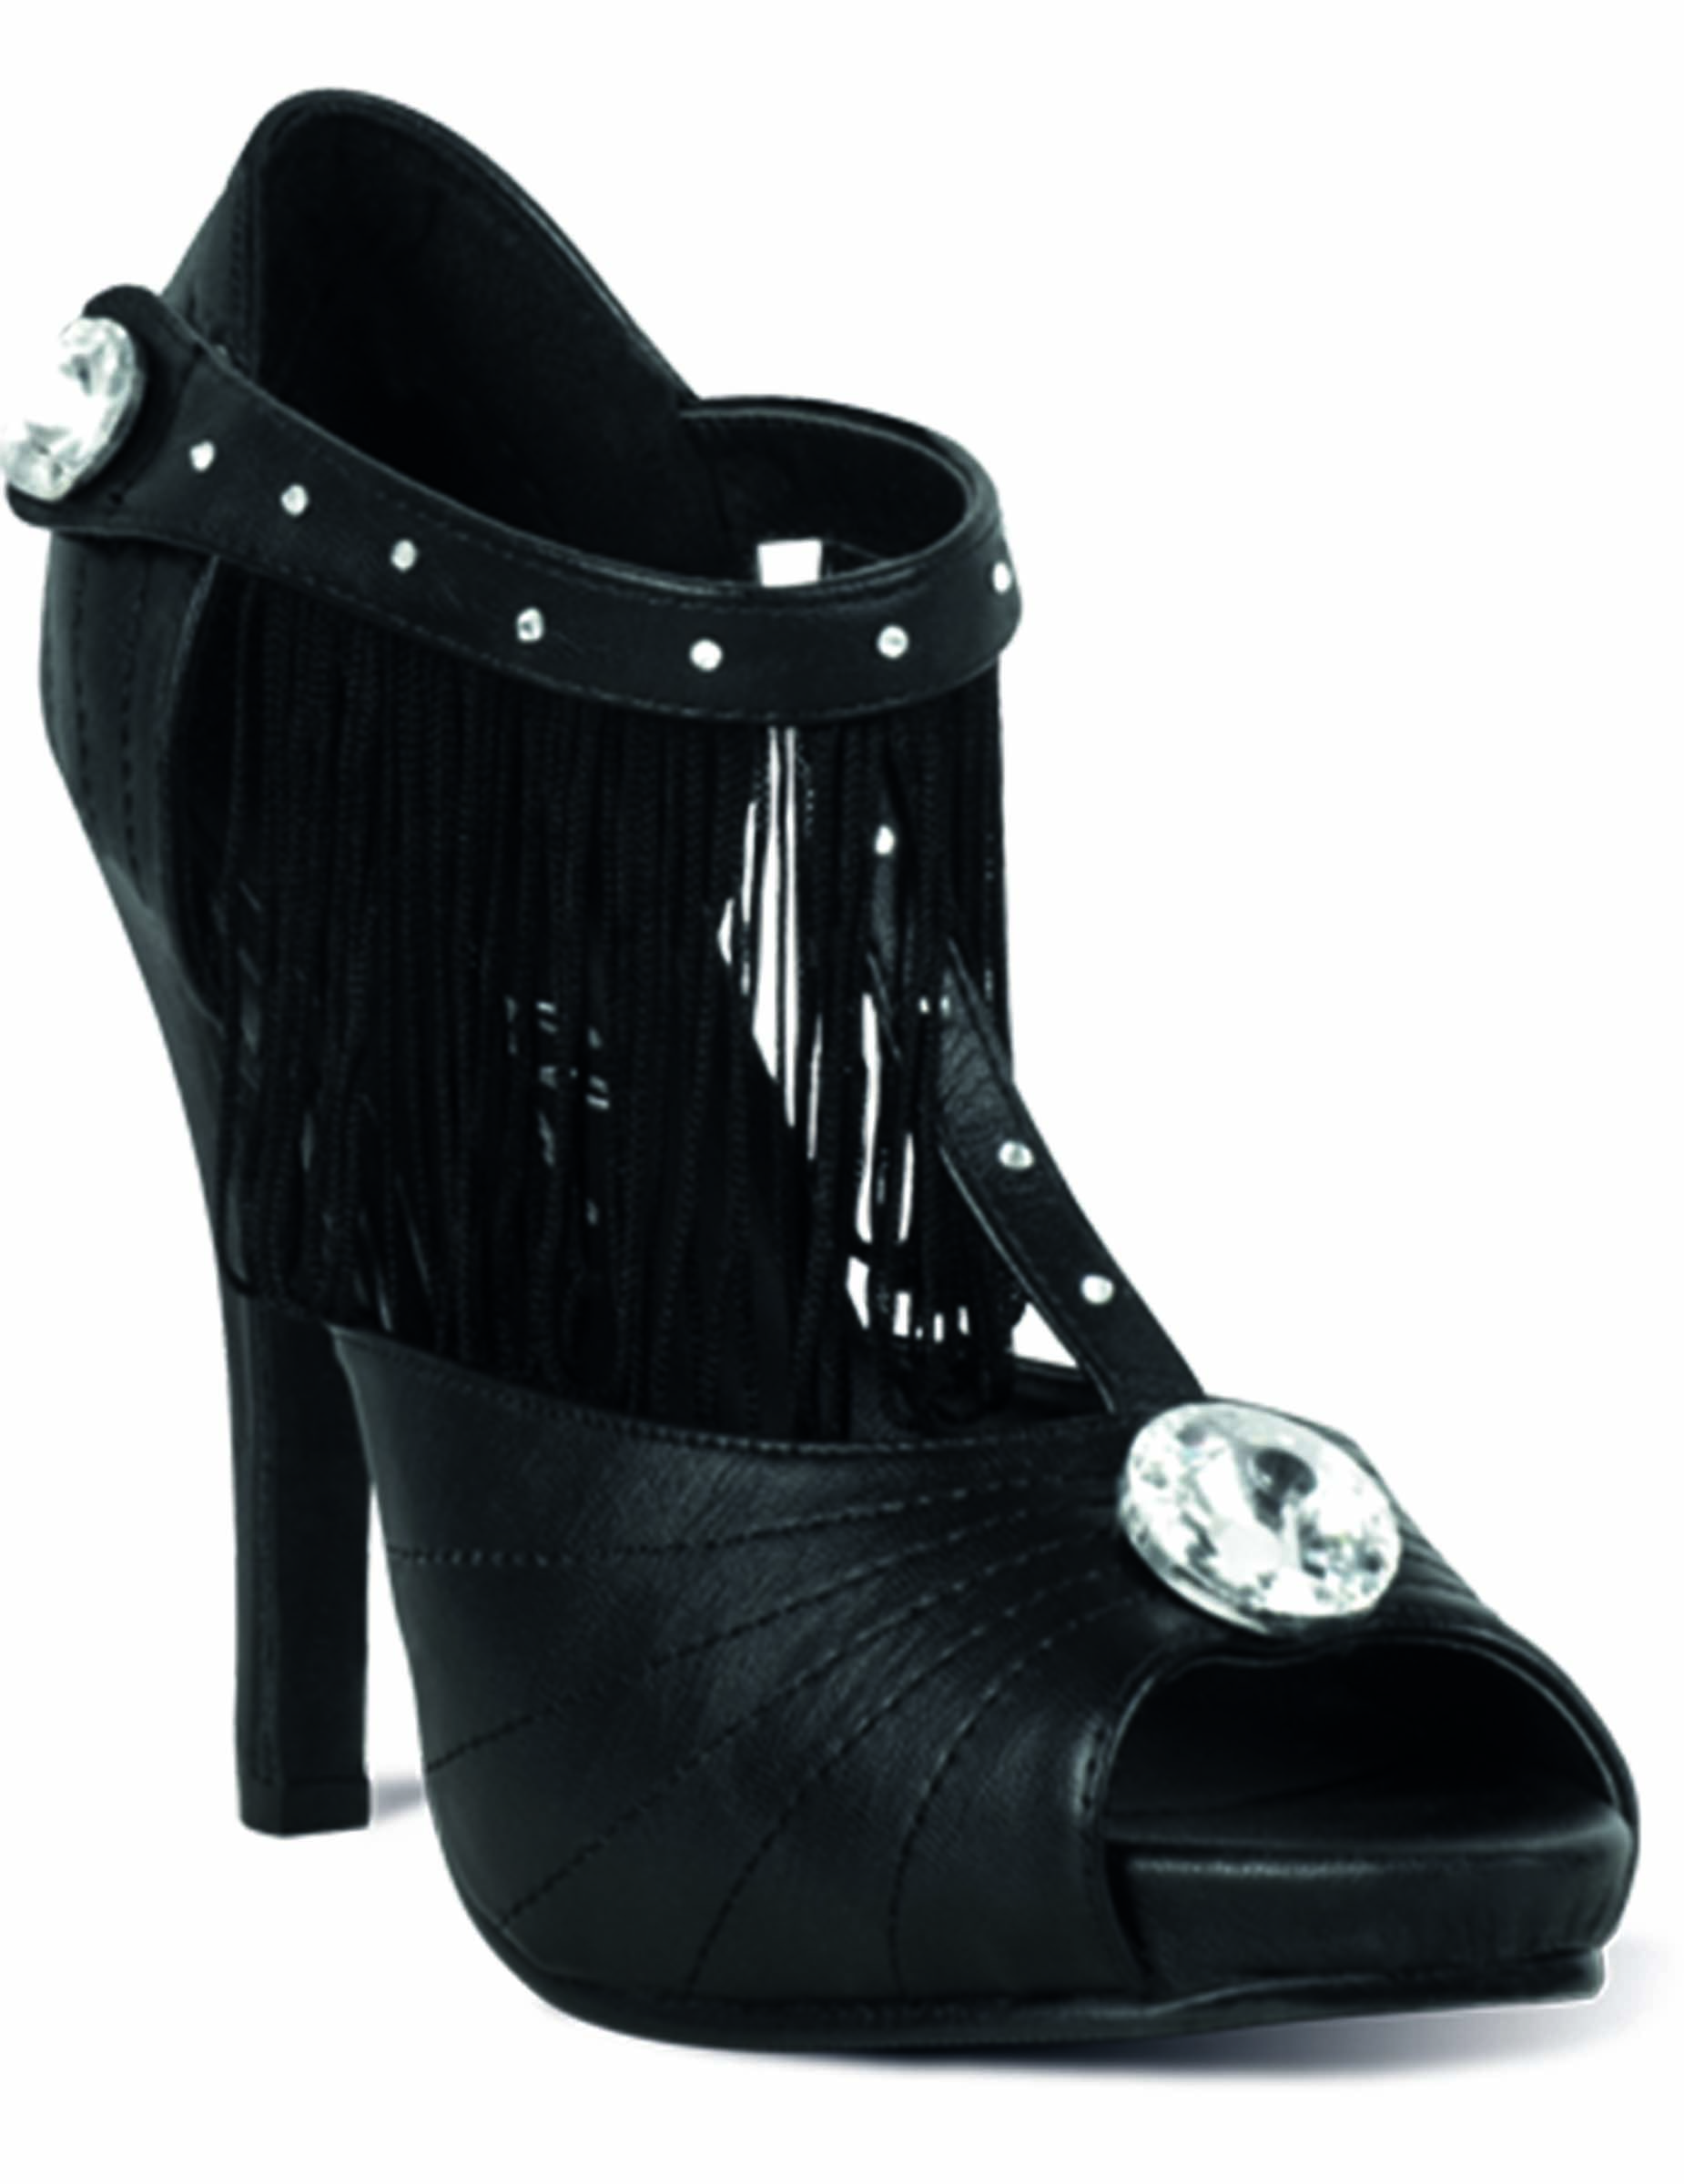 e98643772425 Chaussures cabaret luxe femme   Deguise-toi